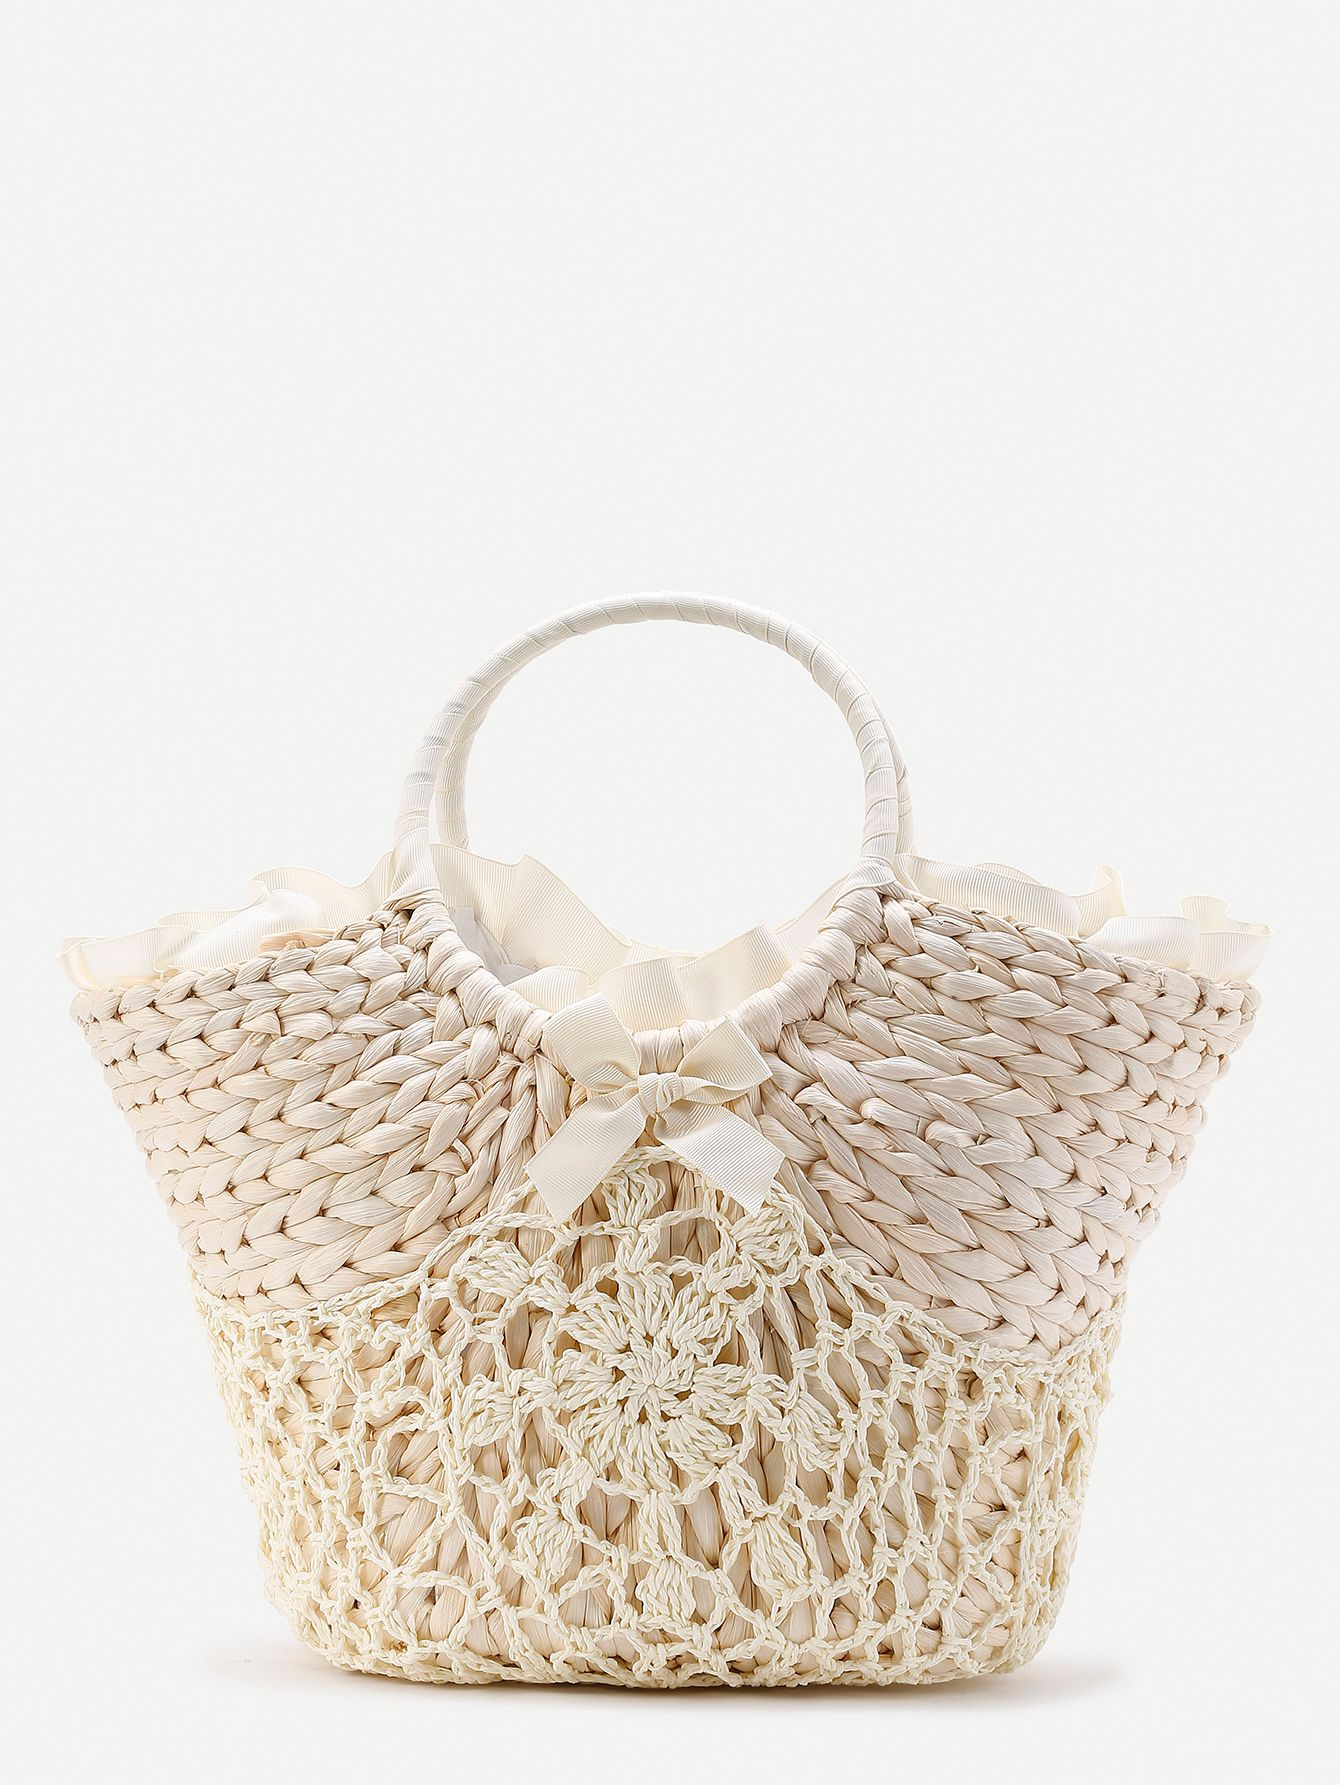 ba1e30a890dbf Shop Beach Style Straw Bag With Crochet Detail online. SheIn offers Beach  Style Straw Bag With Crochet Detail & more to fit your fashionable needs.